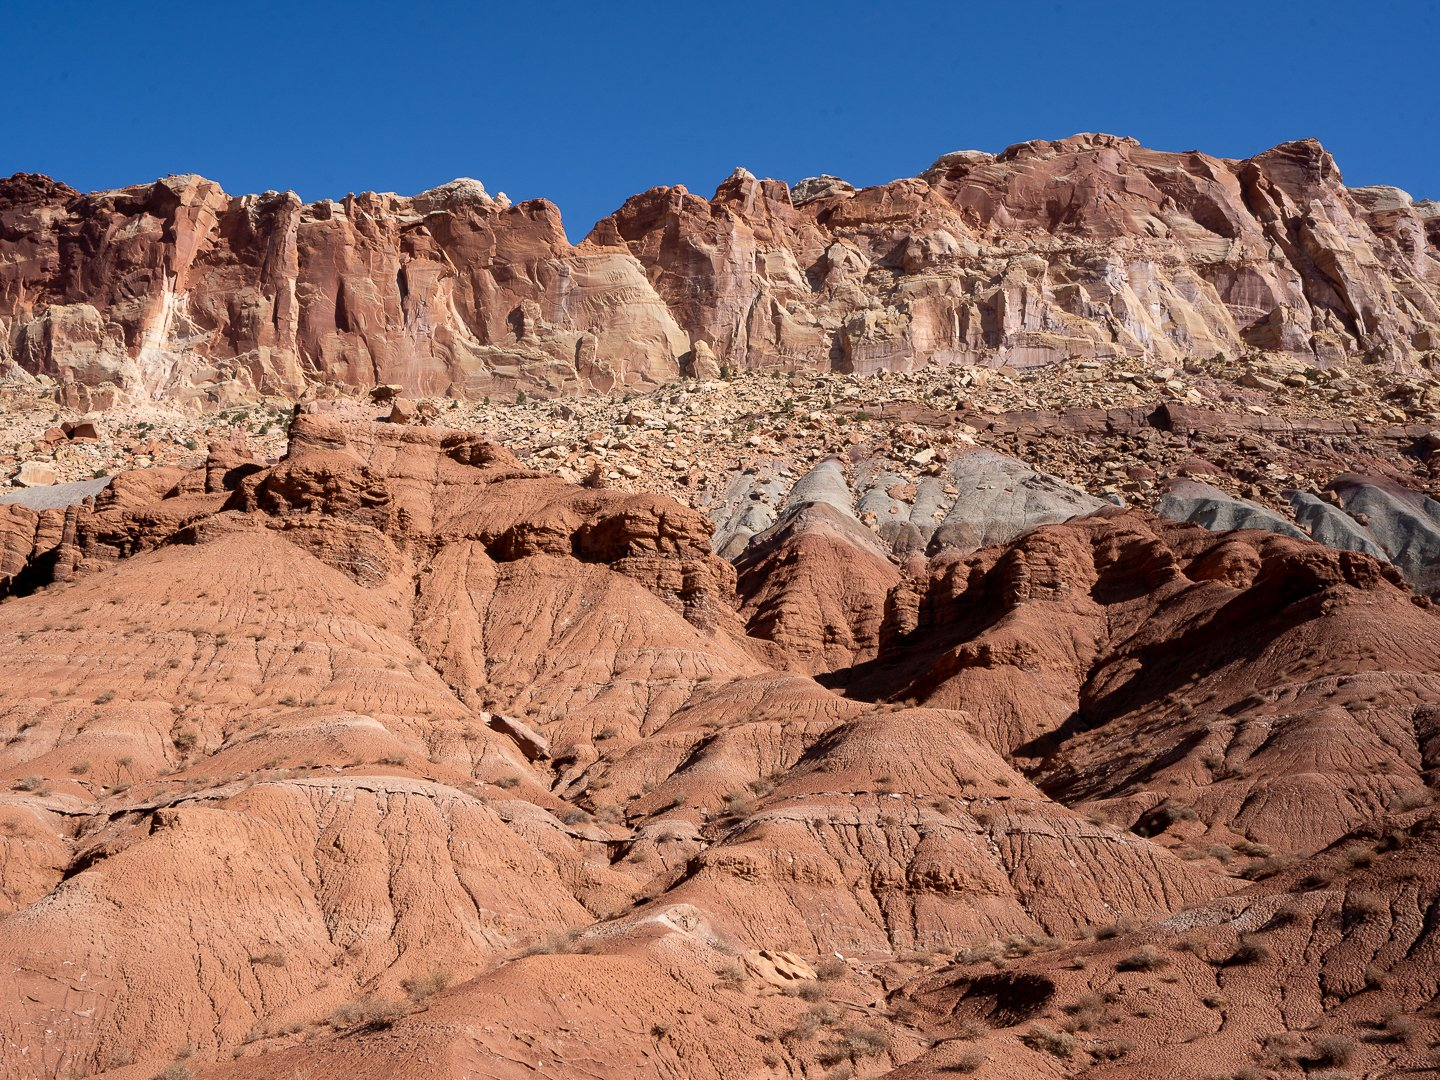 HOW-TO-GET-TO-CAPITOL-REEF-NATIONAL-PARK